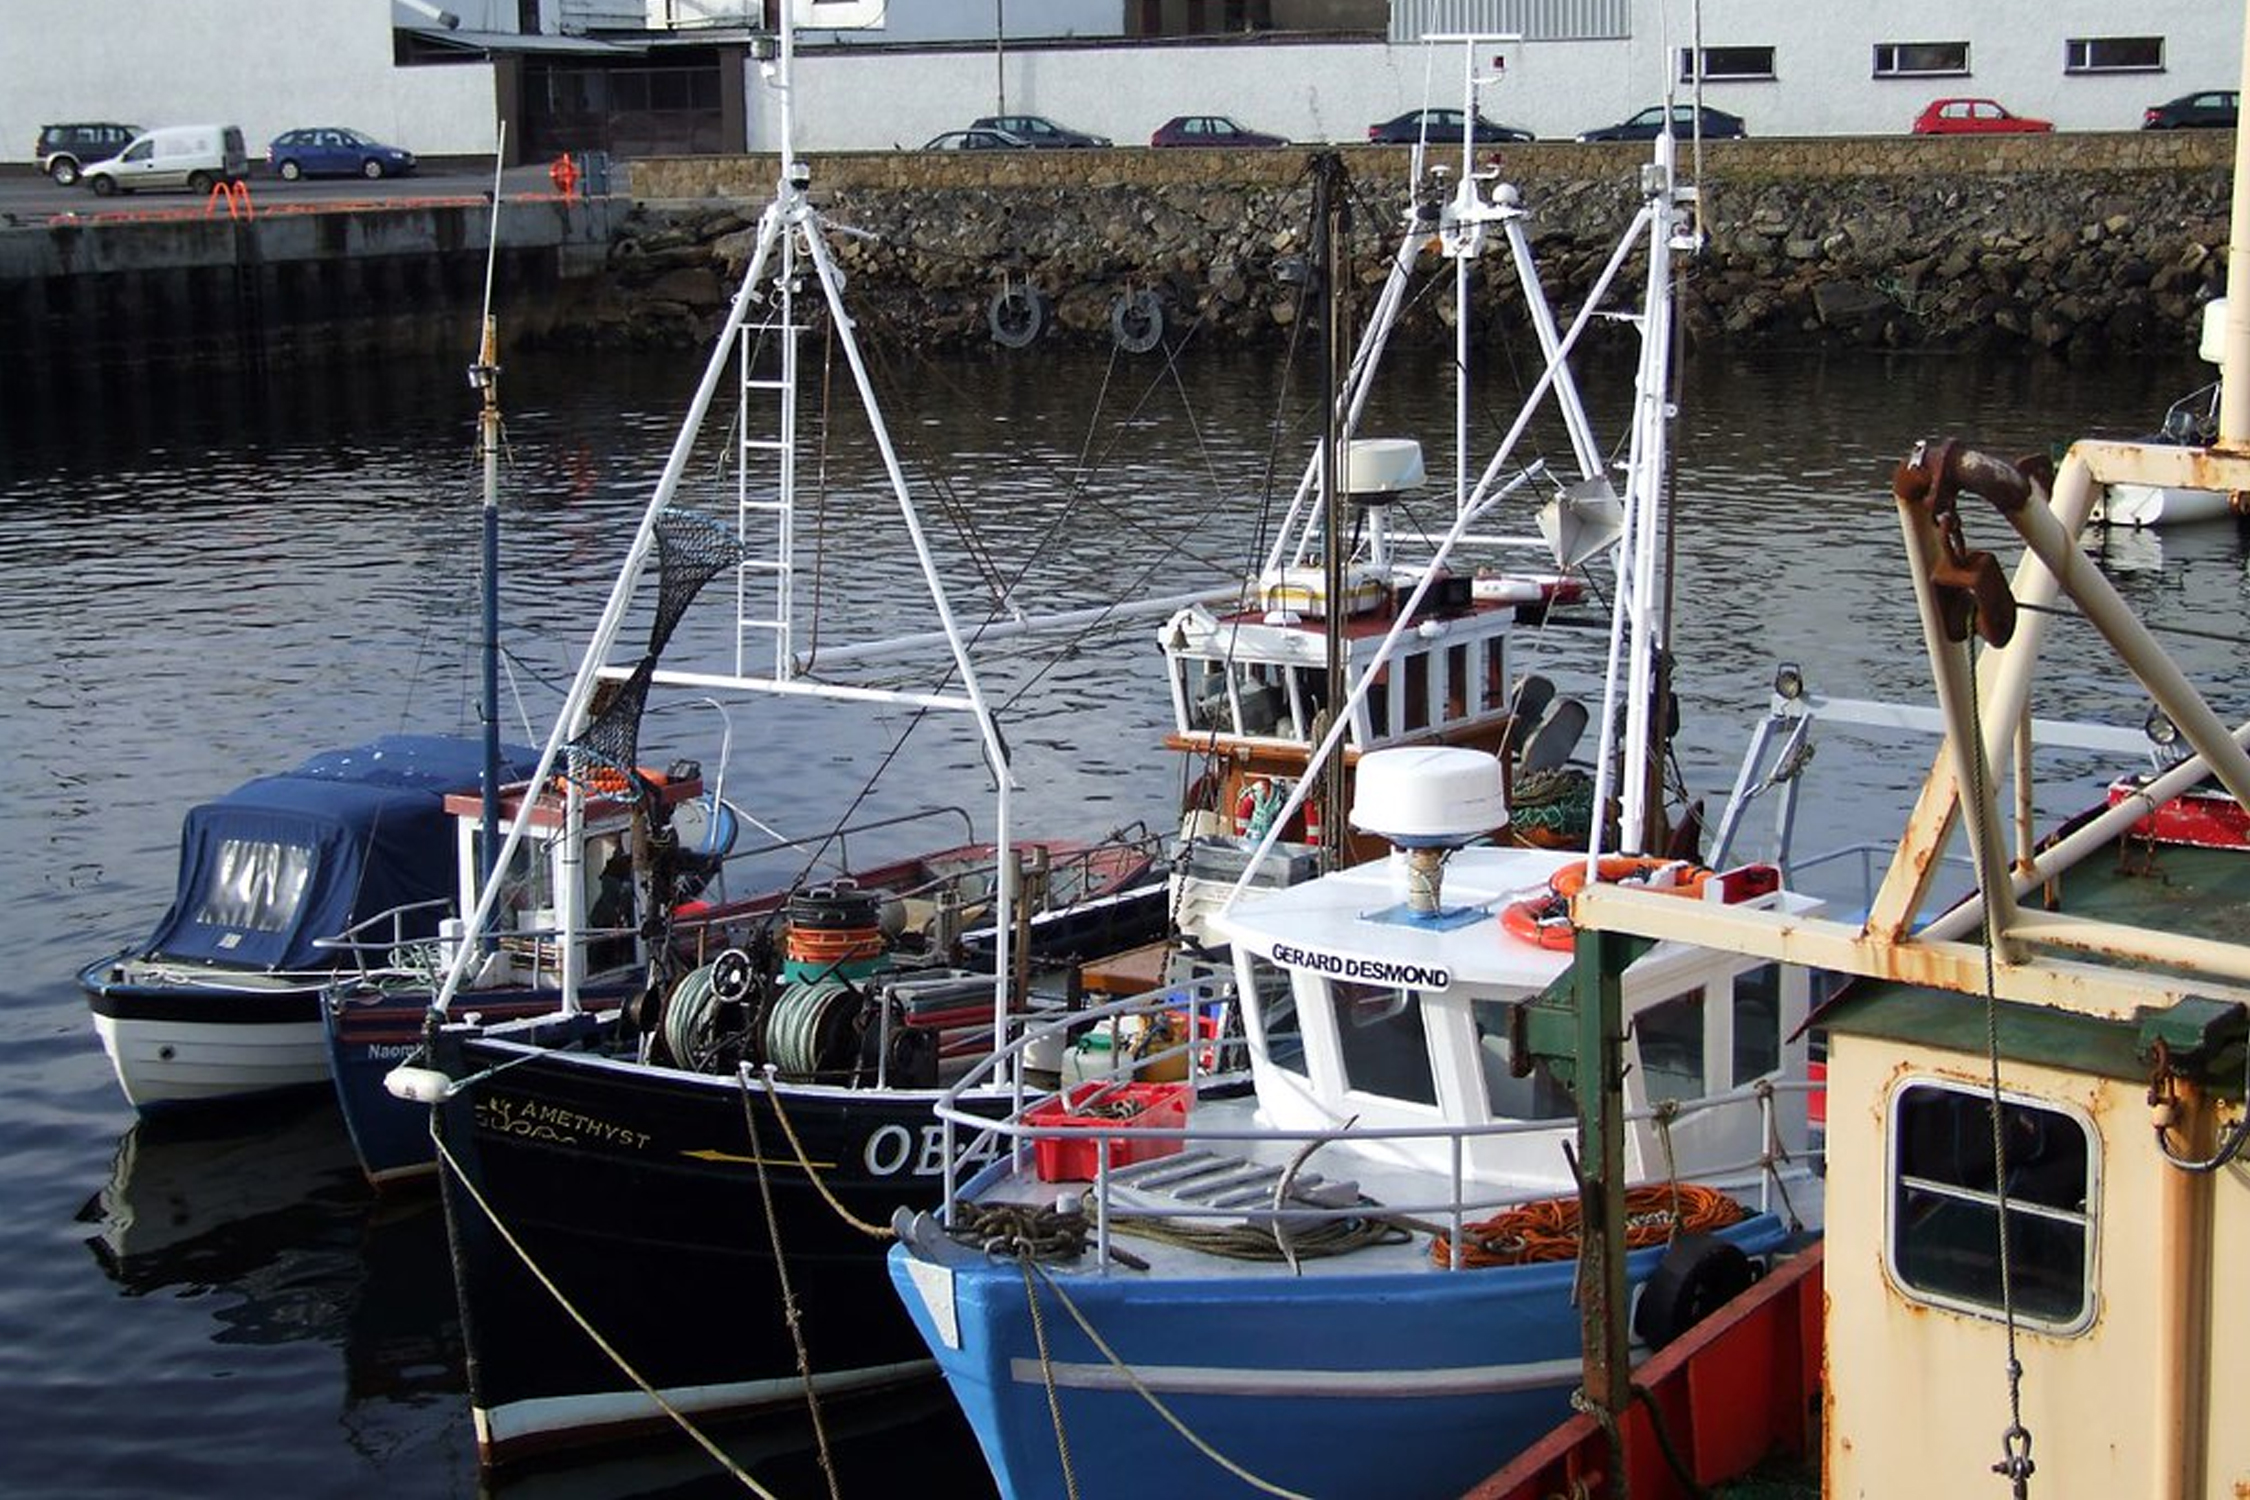 Oban fishing boats in the harbour